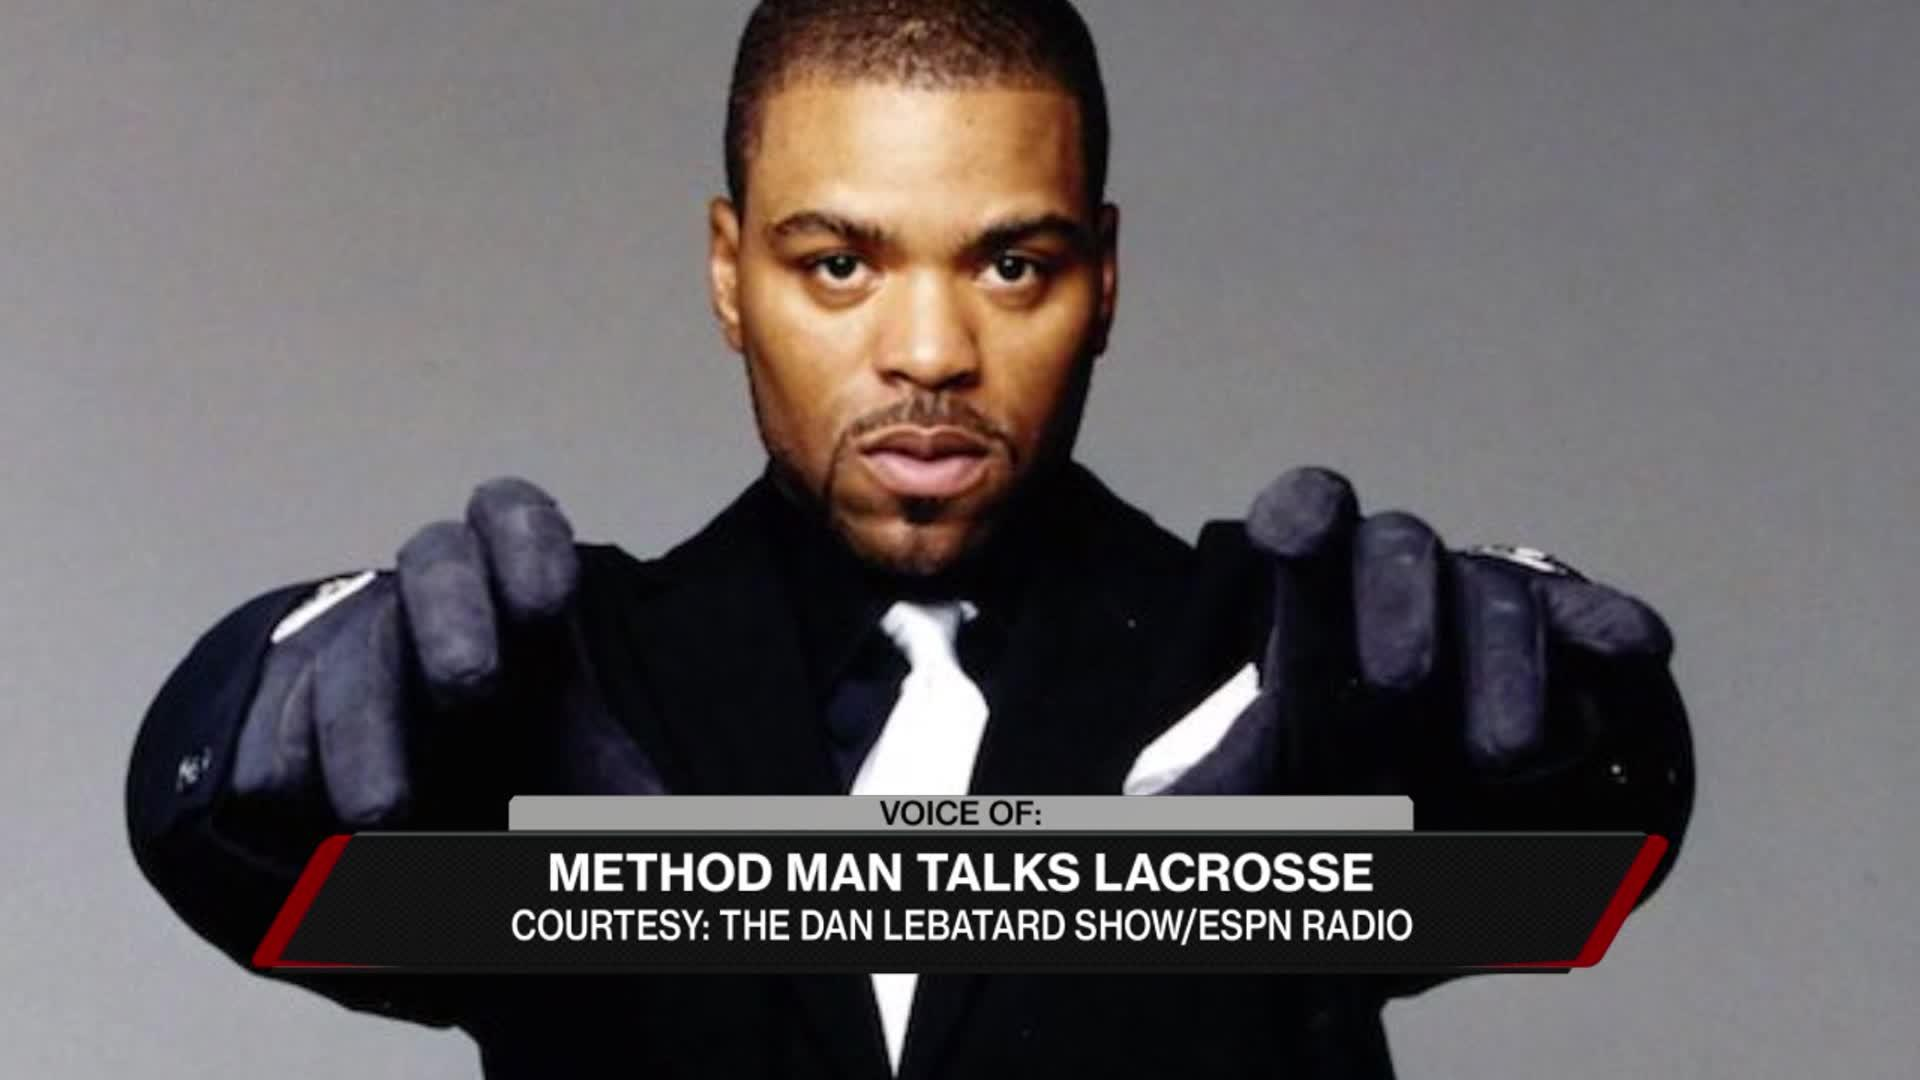 Method Man Talks Lacrosse